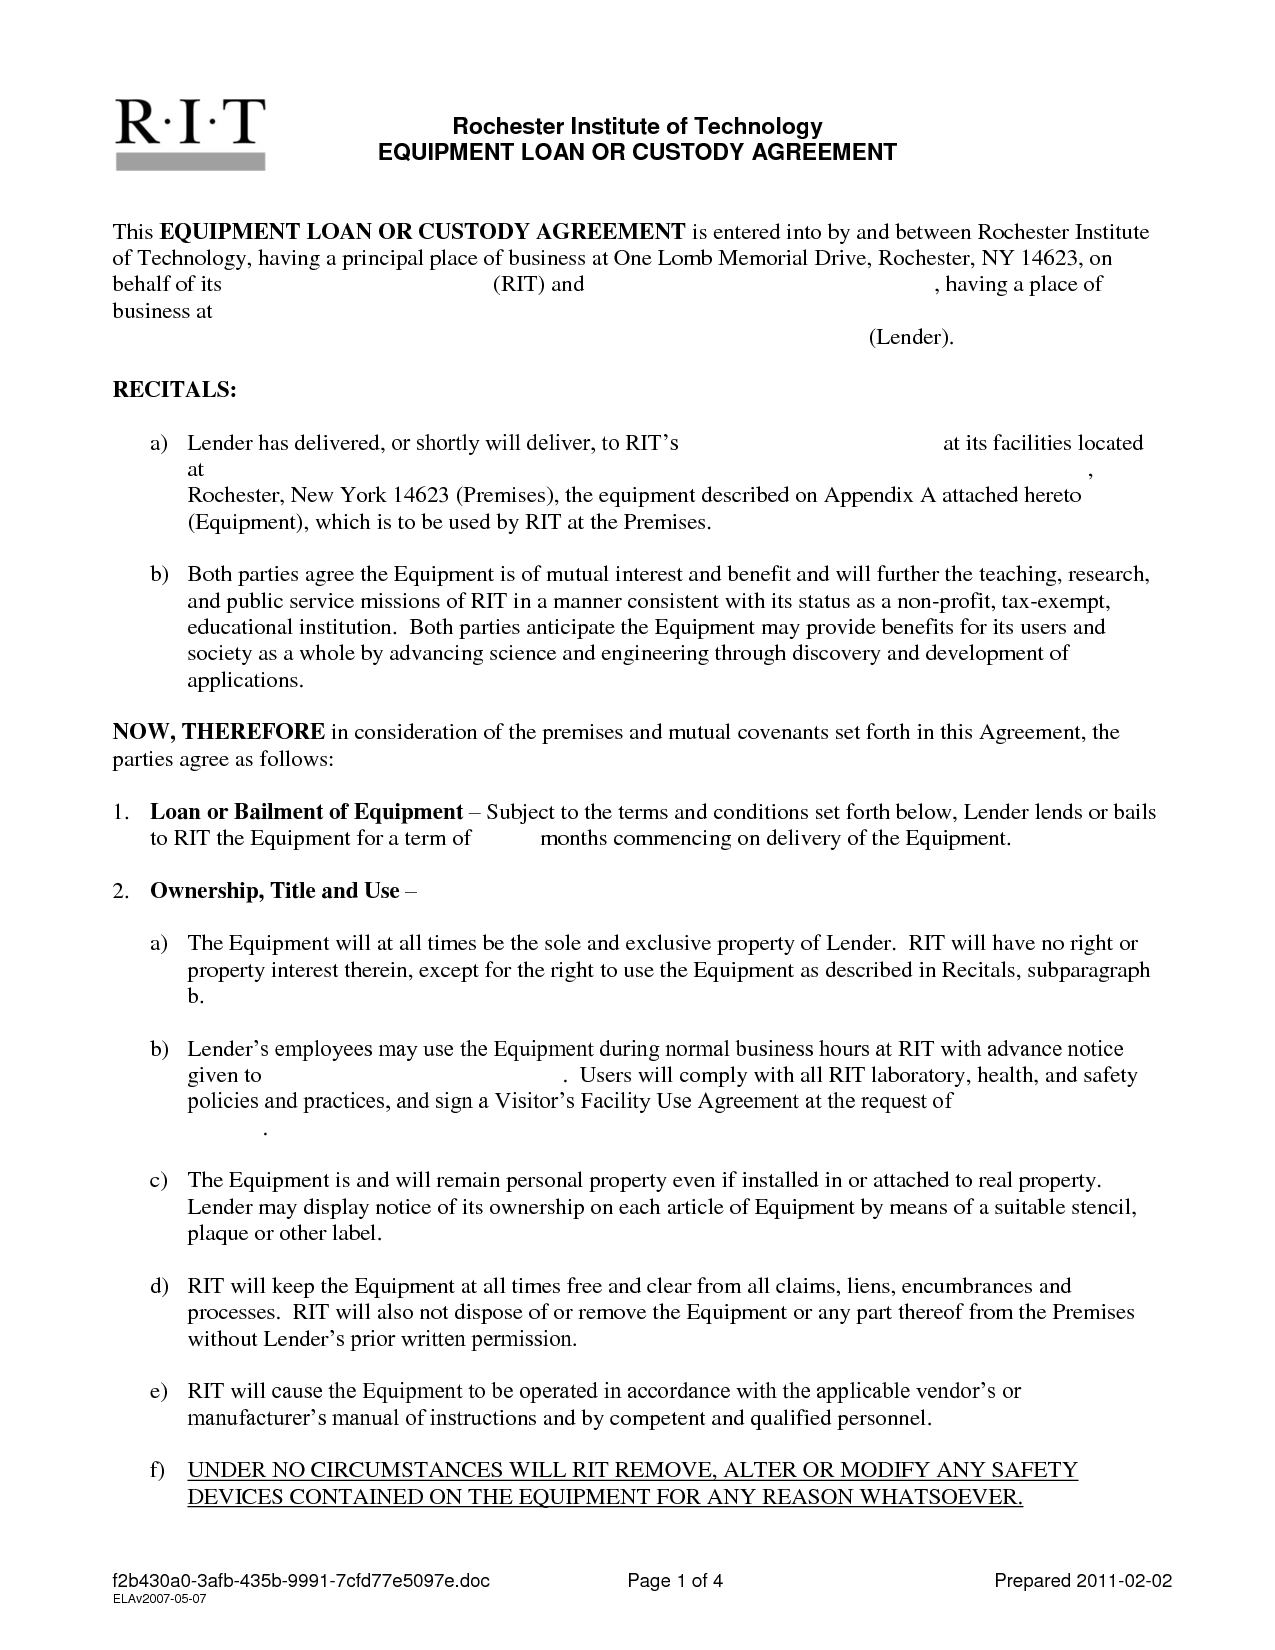 Private Mortgage Contract Template